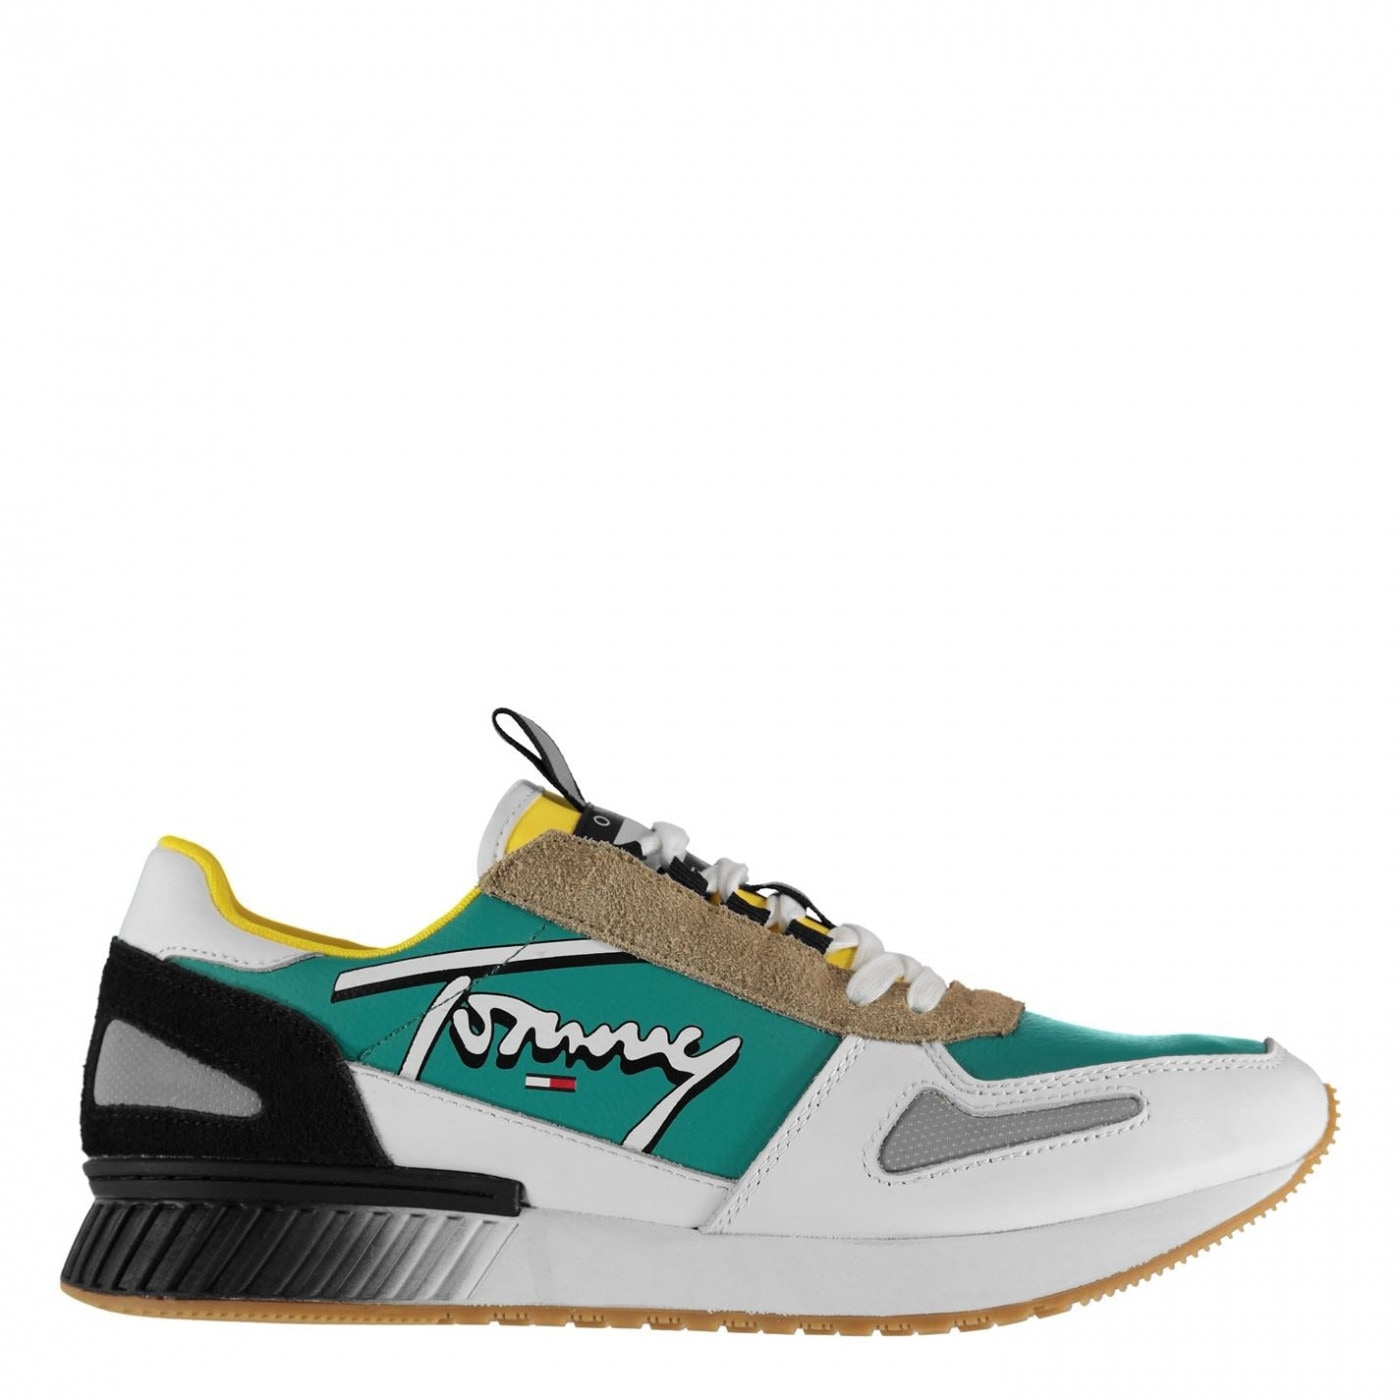 Tommy Jeans Elliot Signature Runner Trainers